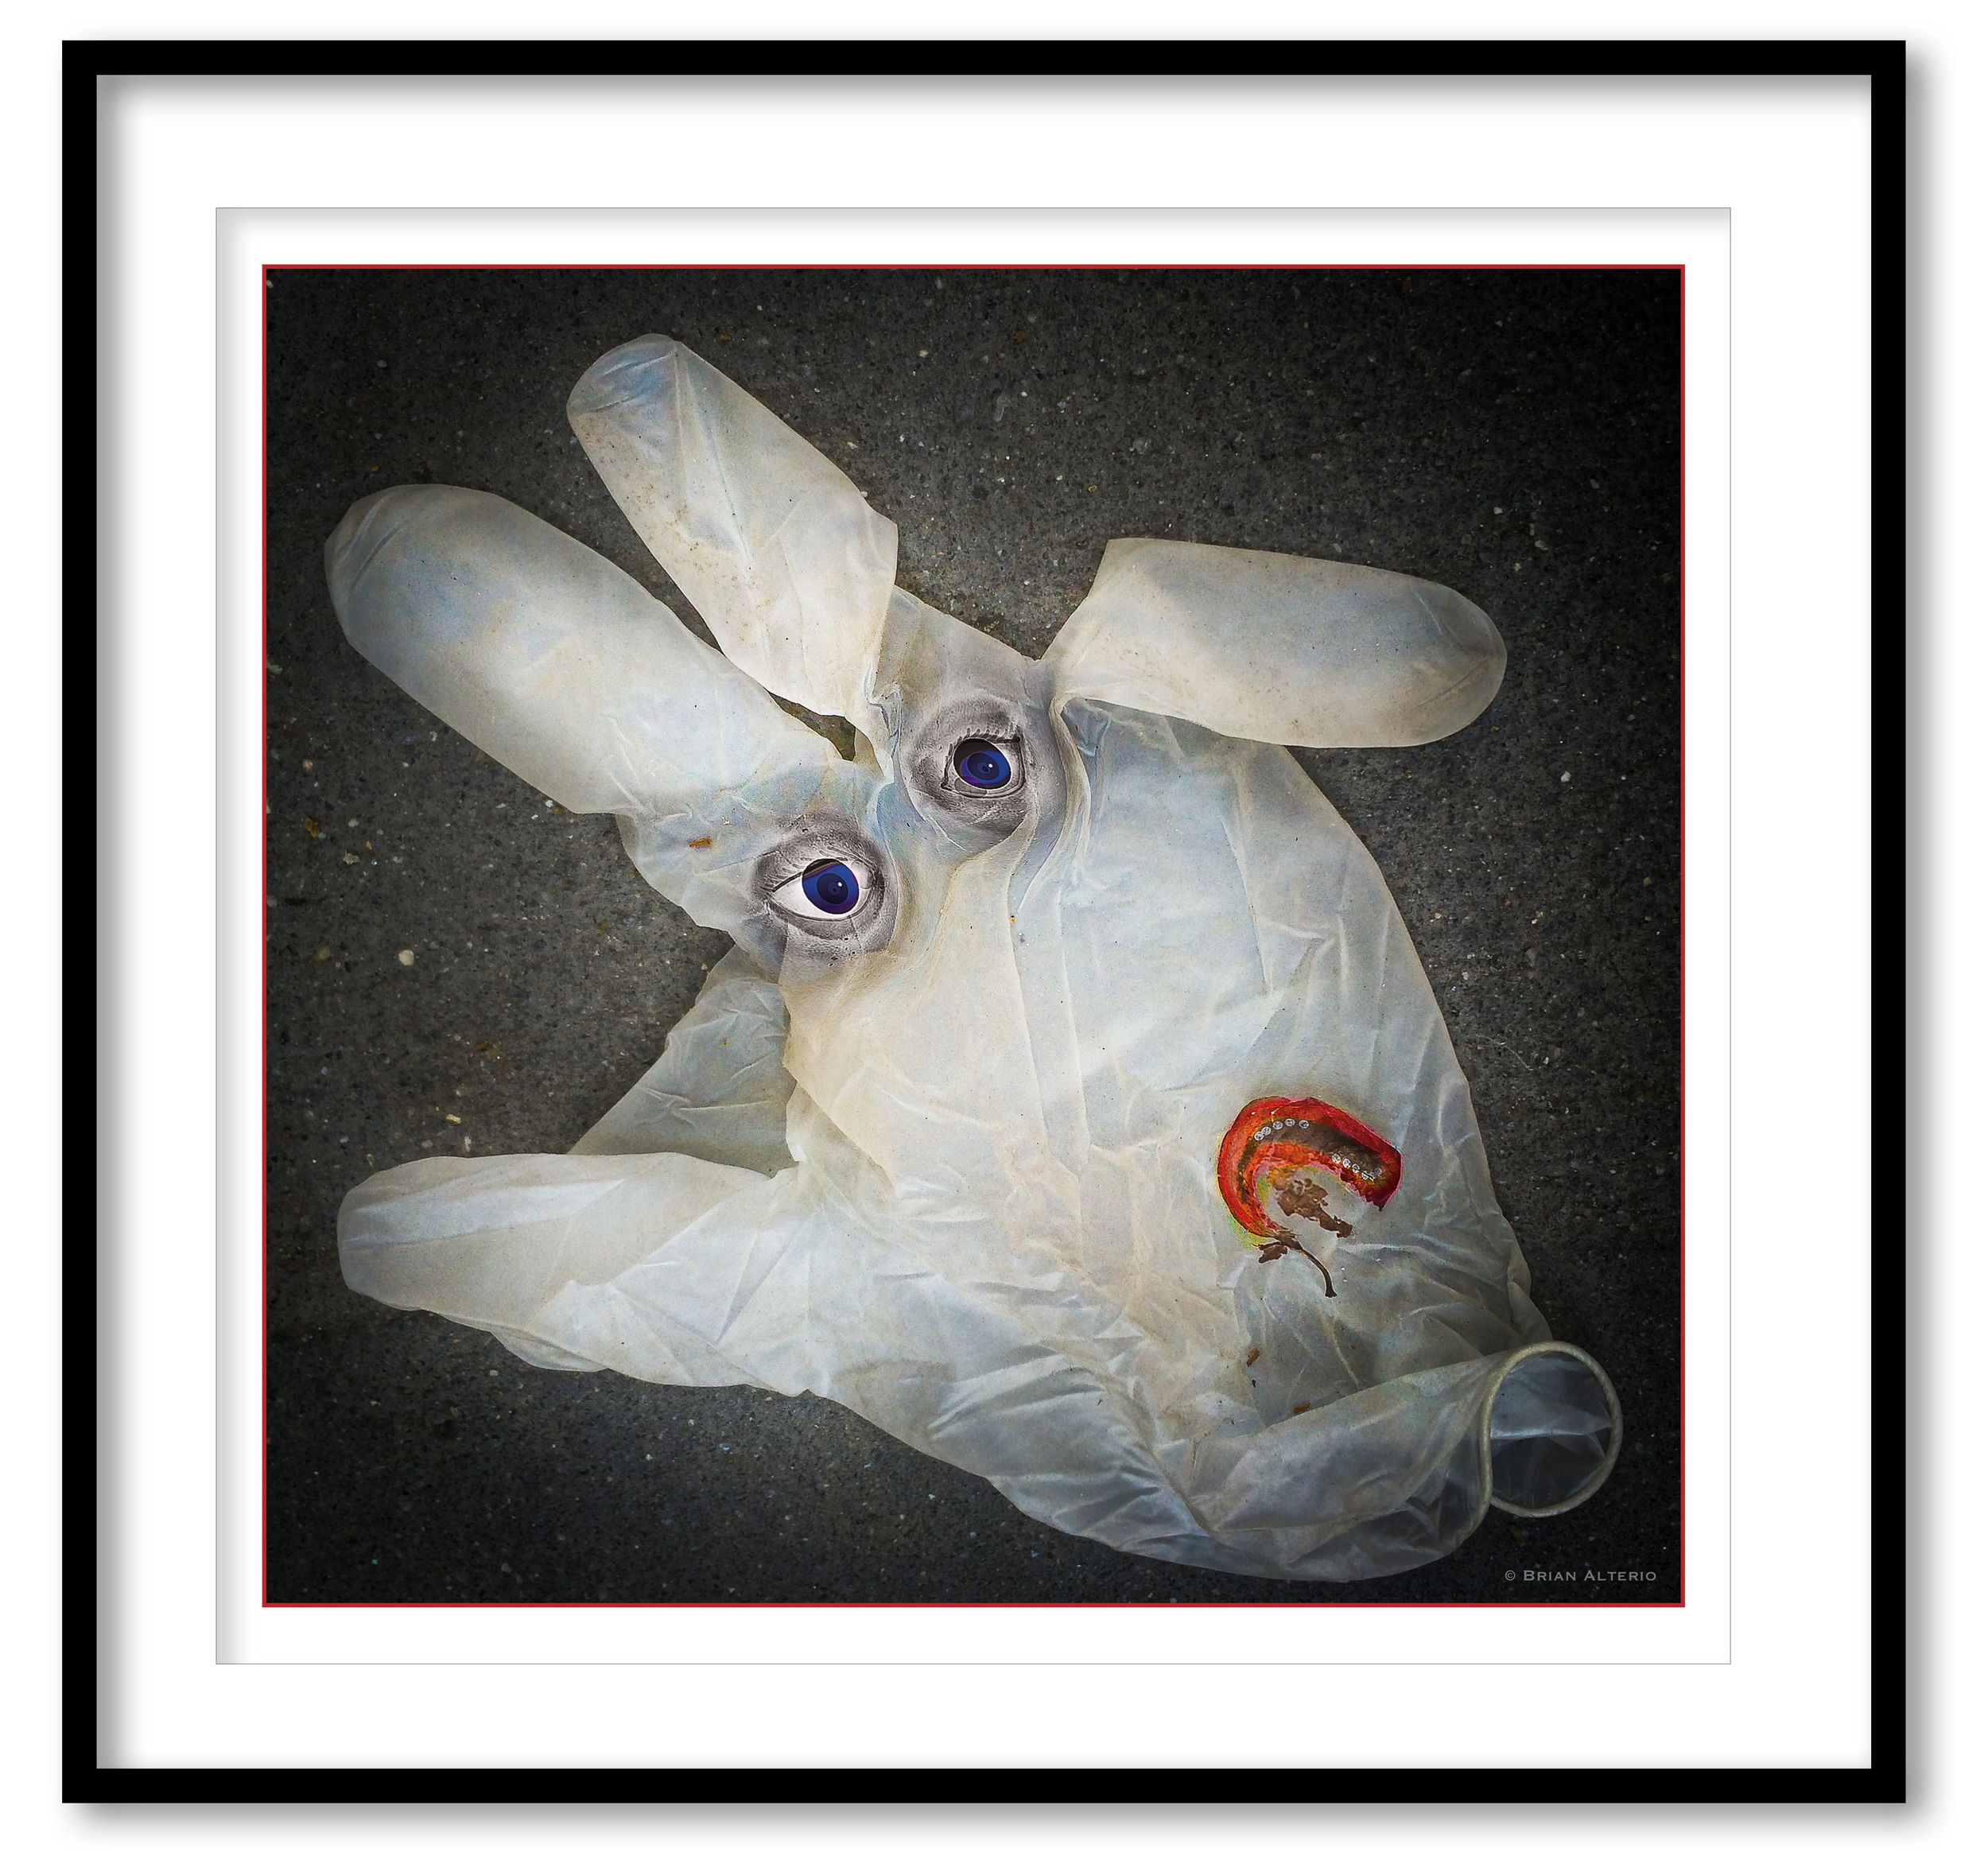 Sad White Rubber Glove Mystery #2 - 6.31.16 - Framed.jpg